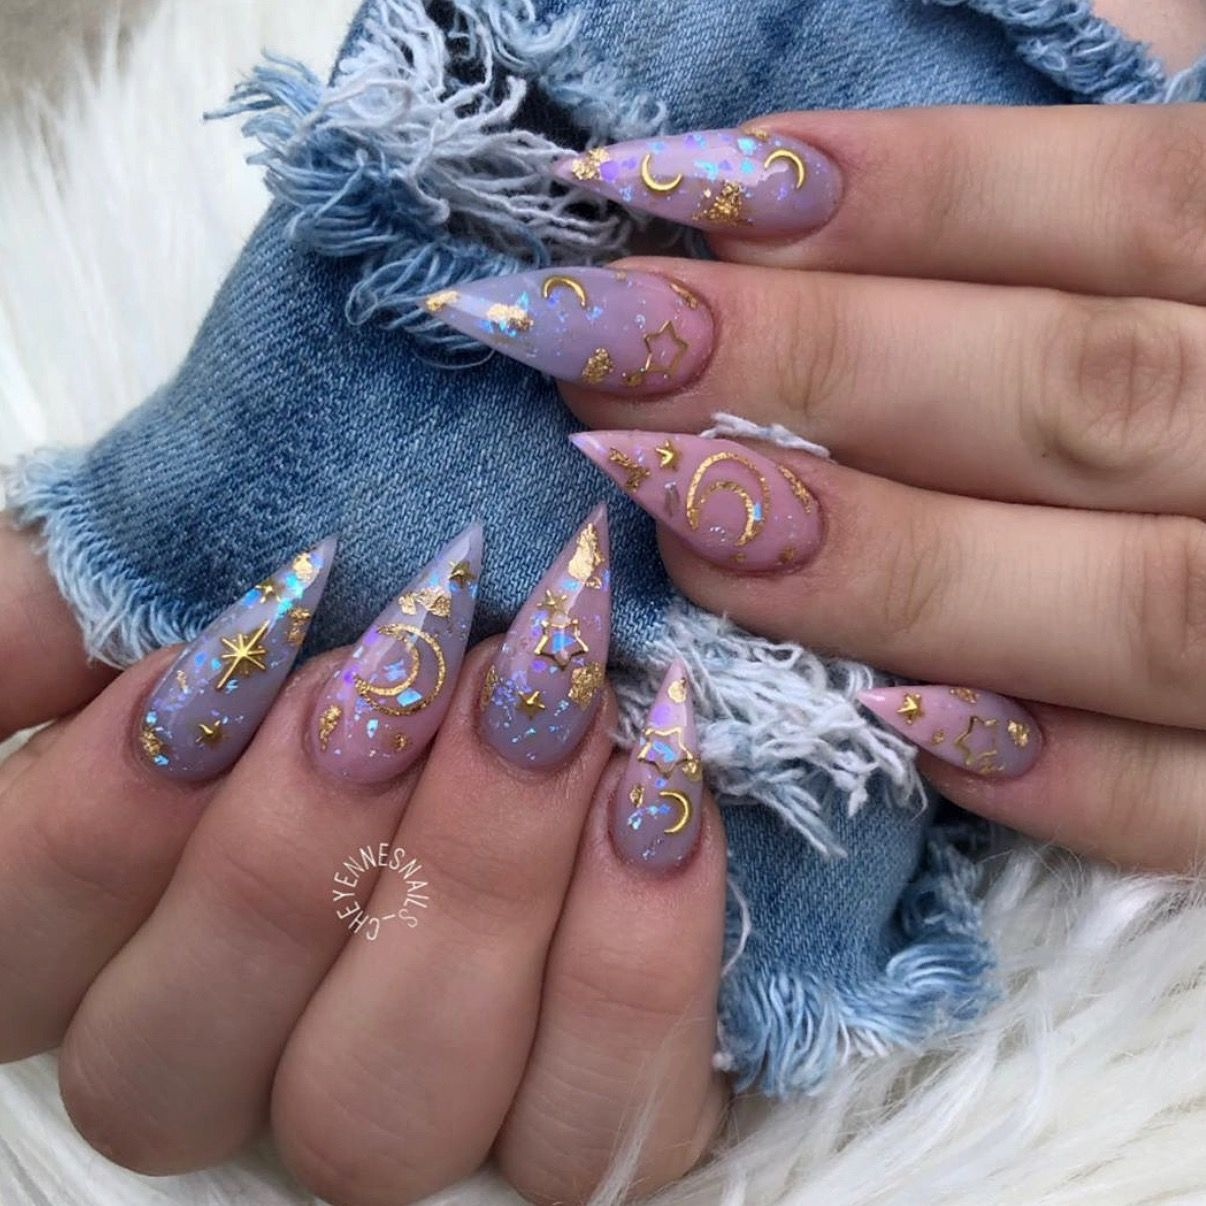 Pin by Salena McCoy on Acrylic nails in 2020 | Halloween ...